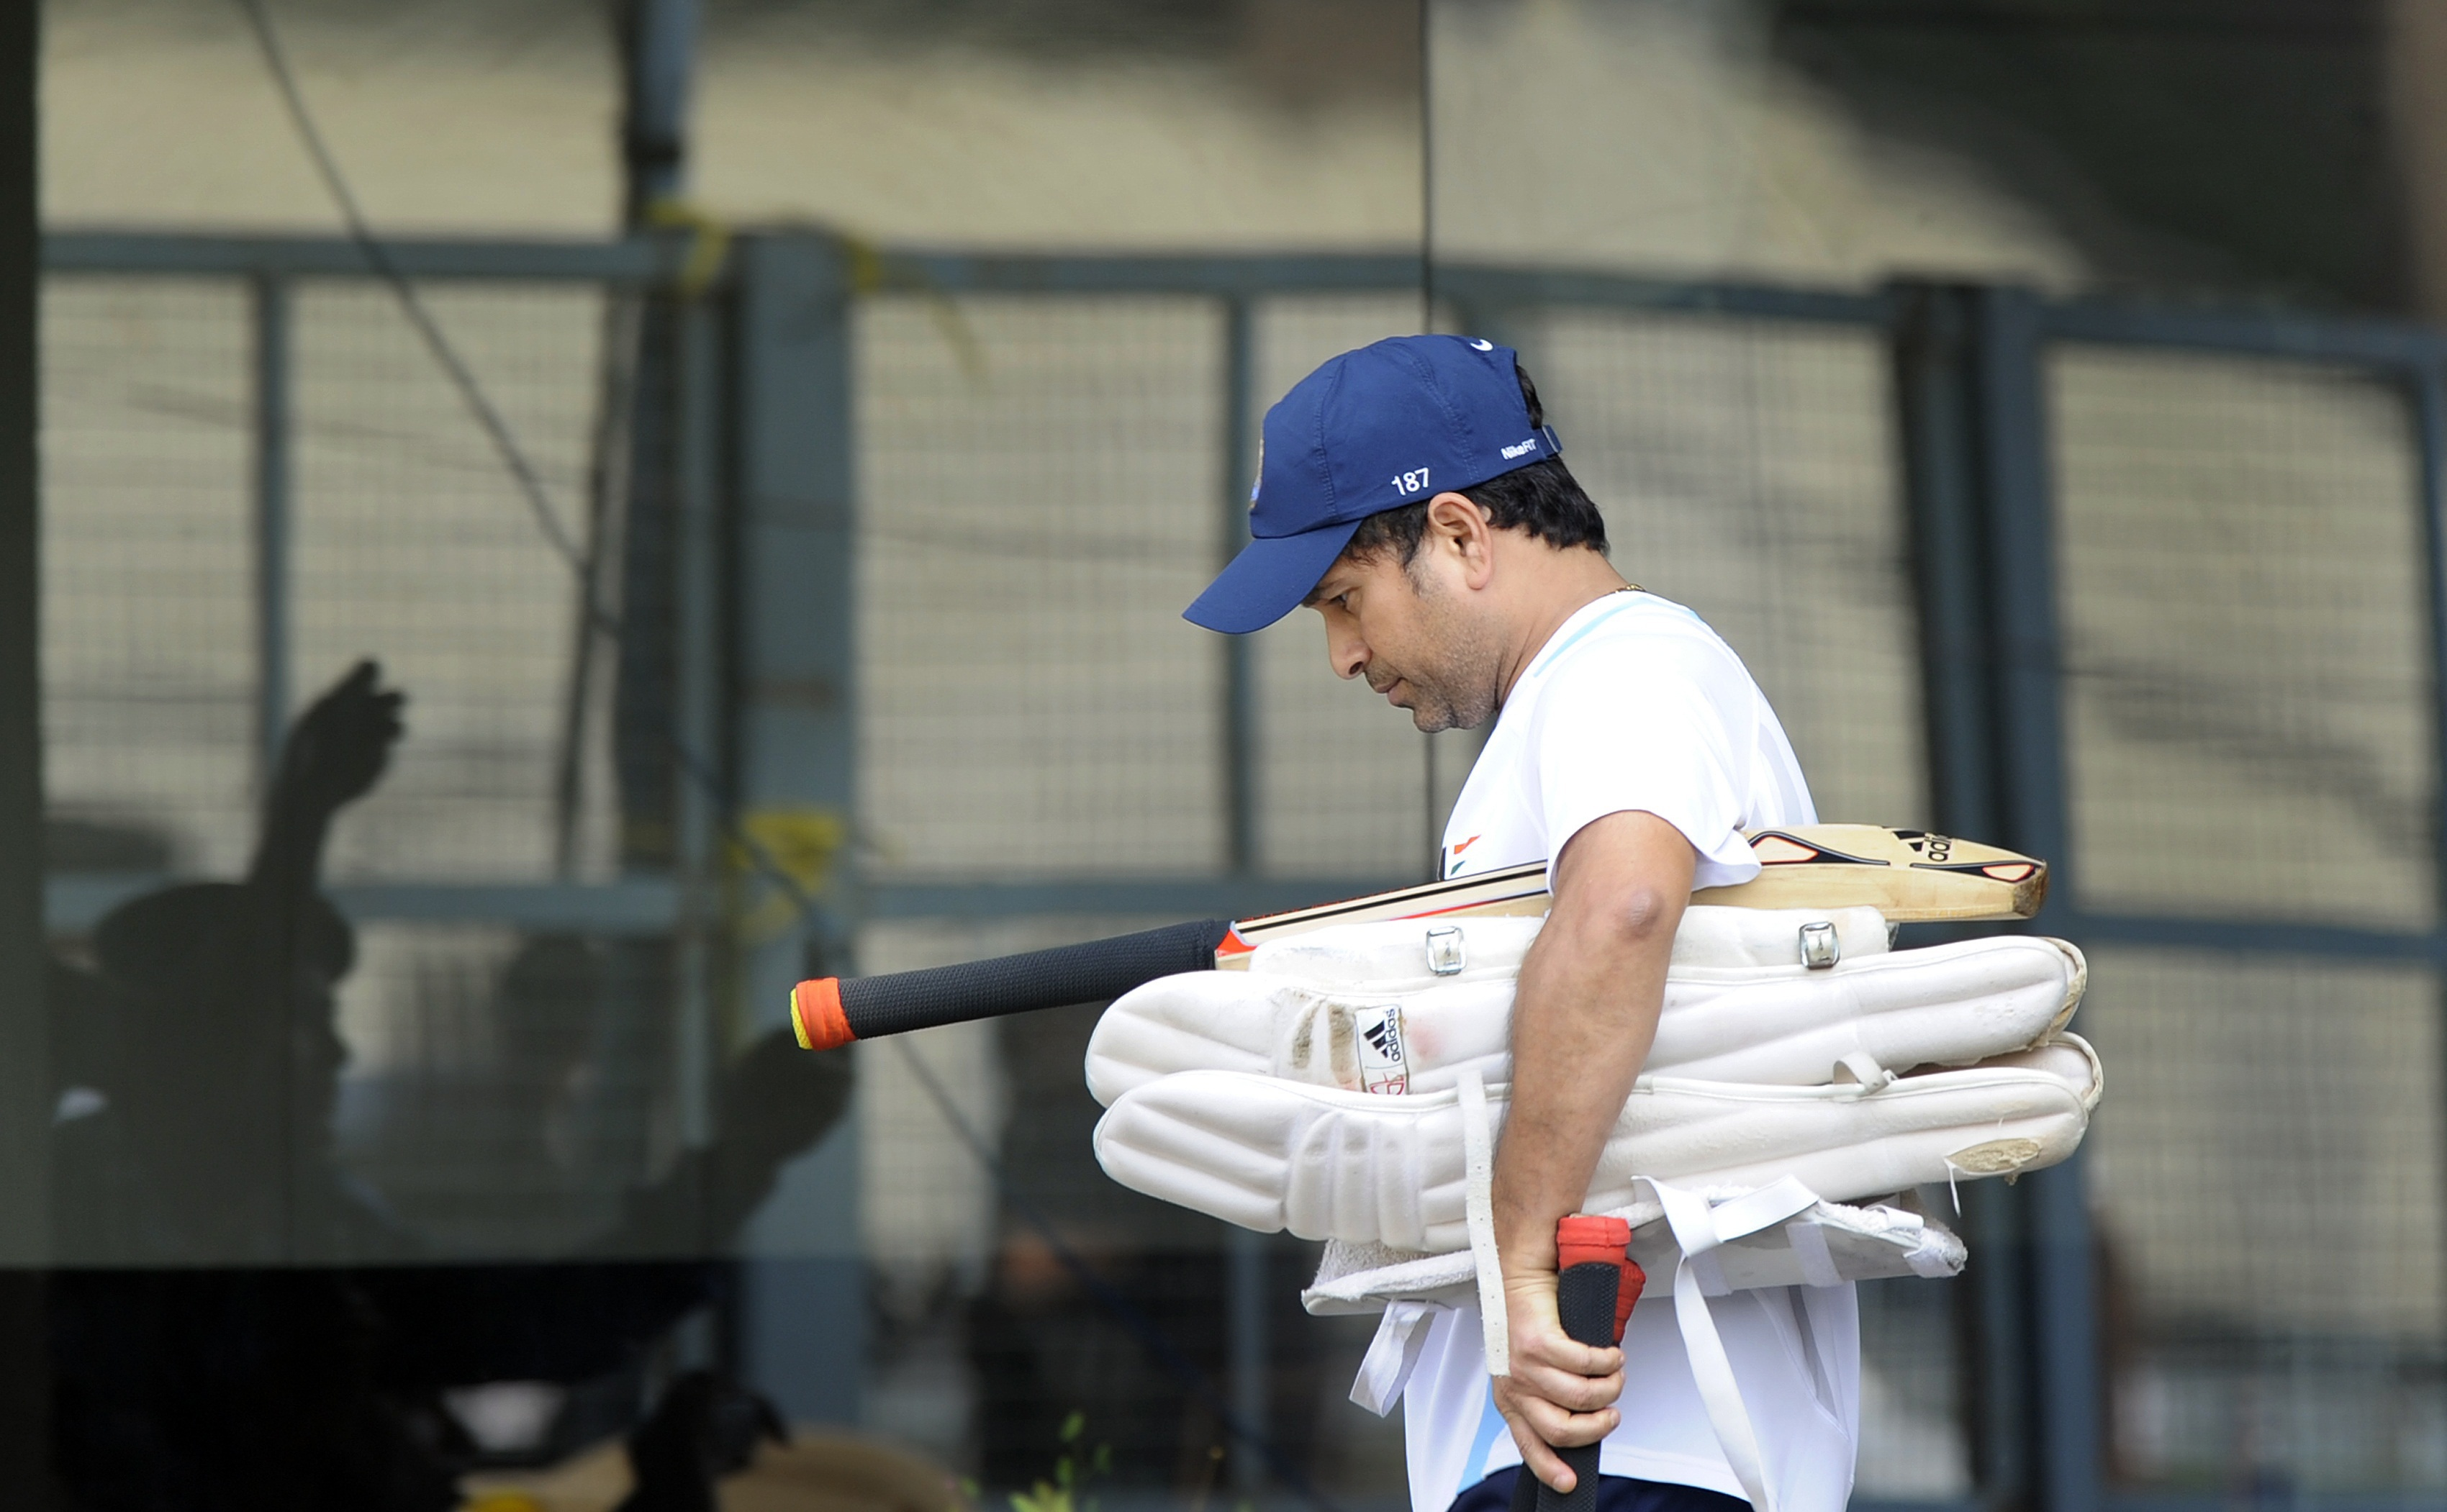 Indian cricketer Sachin Tendulkar walks out of the dressing room for a training session at The Eden Gardens in Kolkata on November 12, 2011. India leads the three-match Test series against the West Indies by 1-0 and will play the Second Test match in Kolkata from November 14. AFP PHOTO/Dibyangshu SARKAR (Photo credit should read DIBYANGSHU SARKAR/AFP/Getty Images)